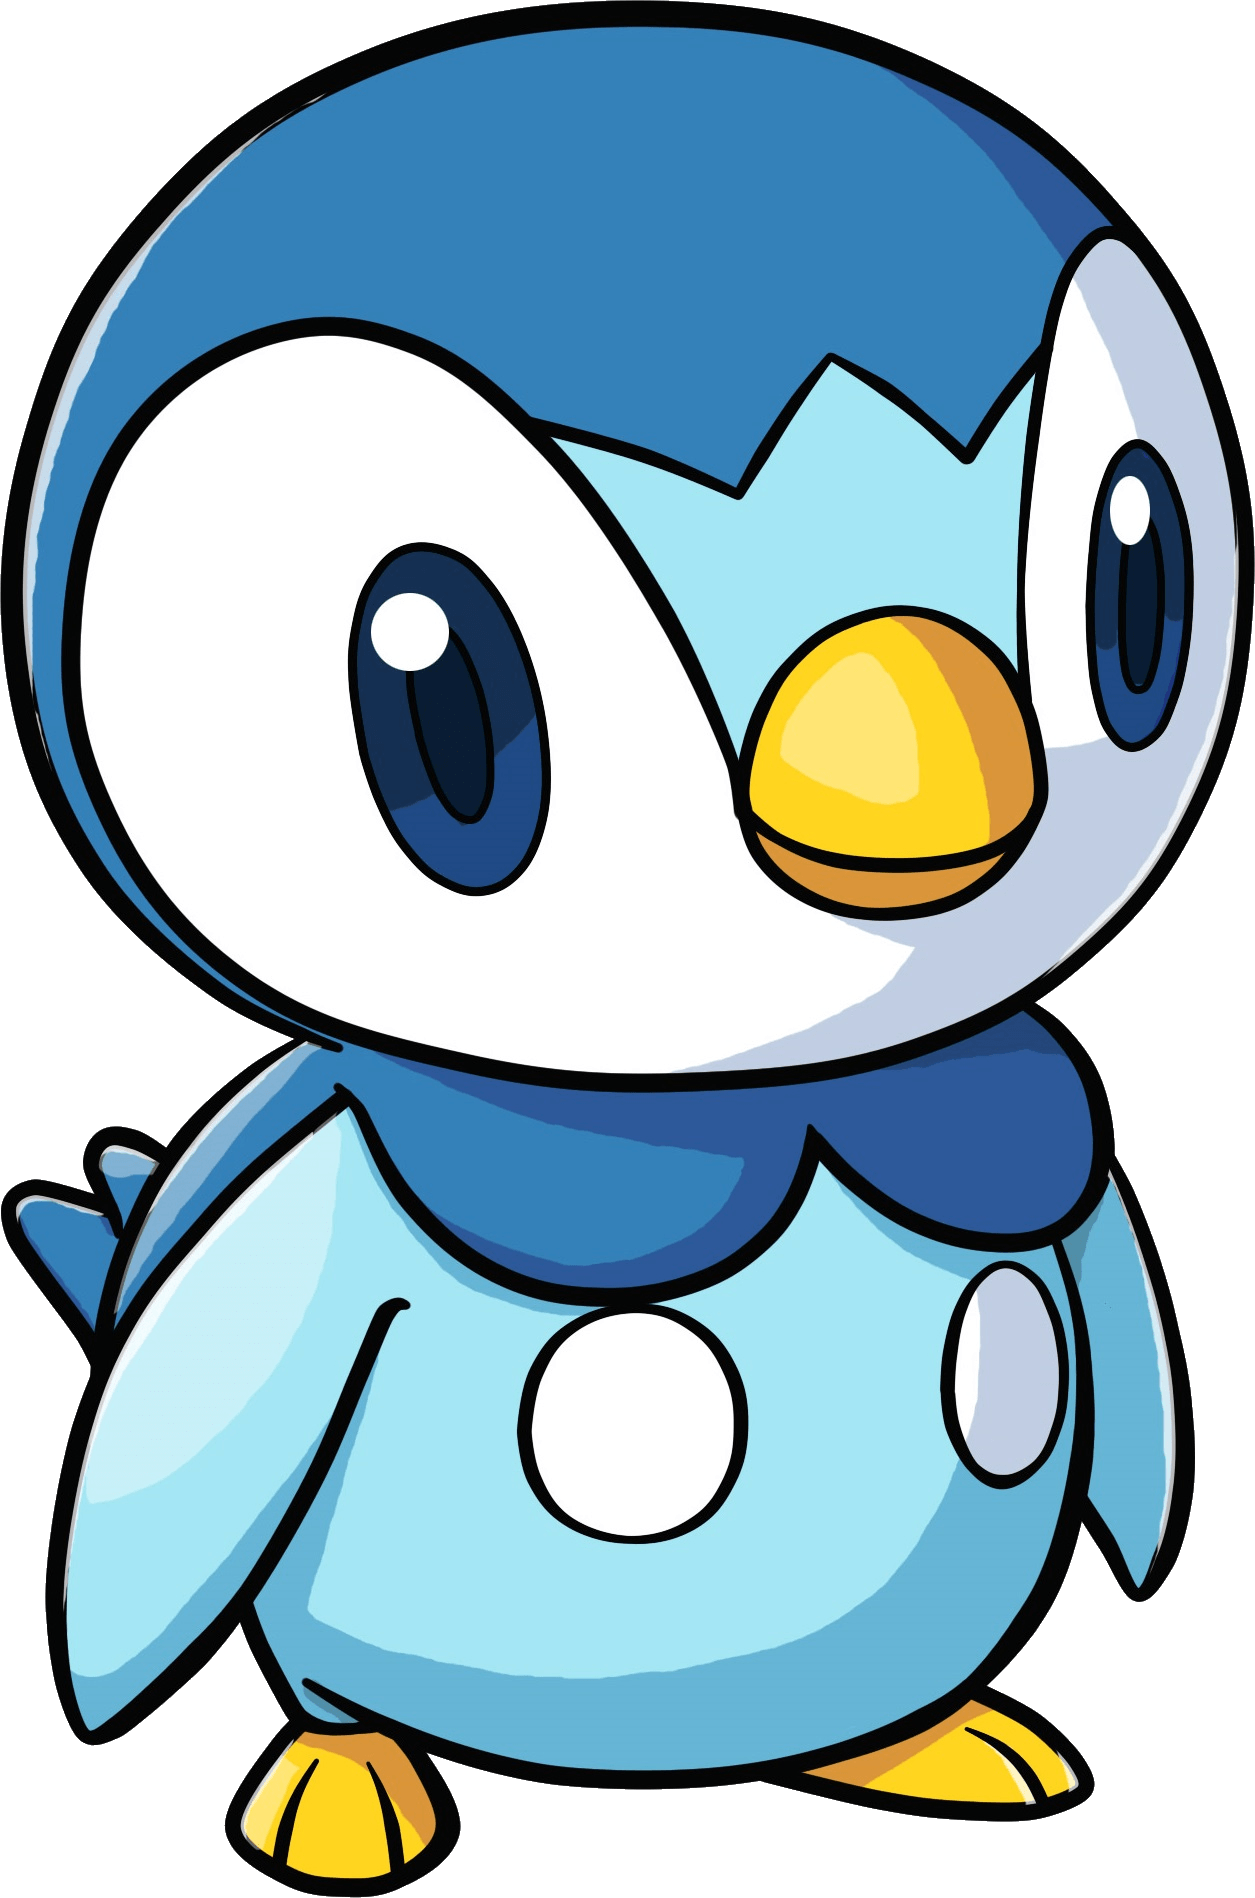 Pokeball clipart transparent background. Piplup pokemon png